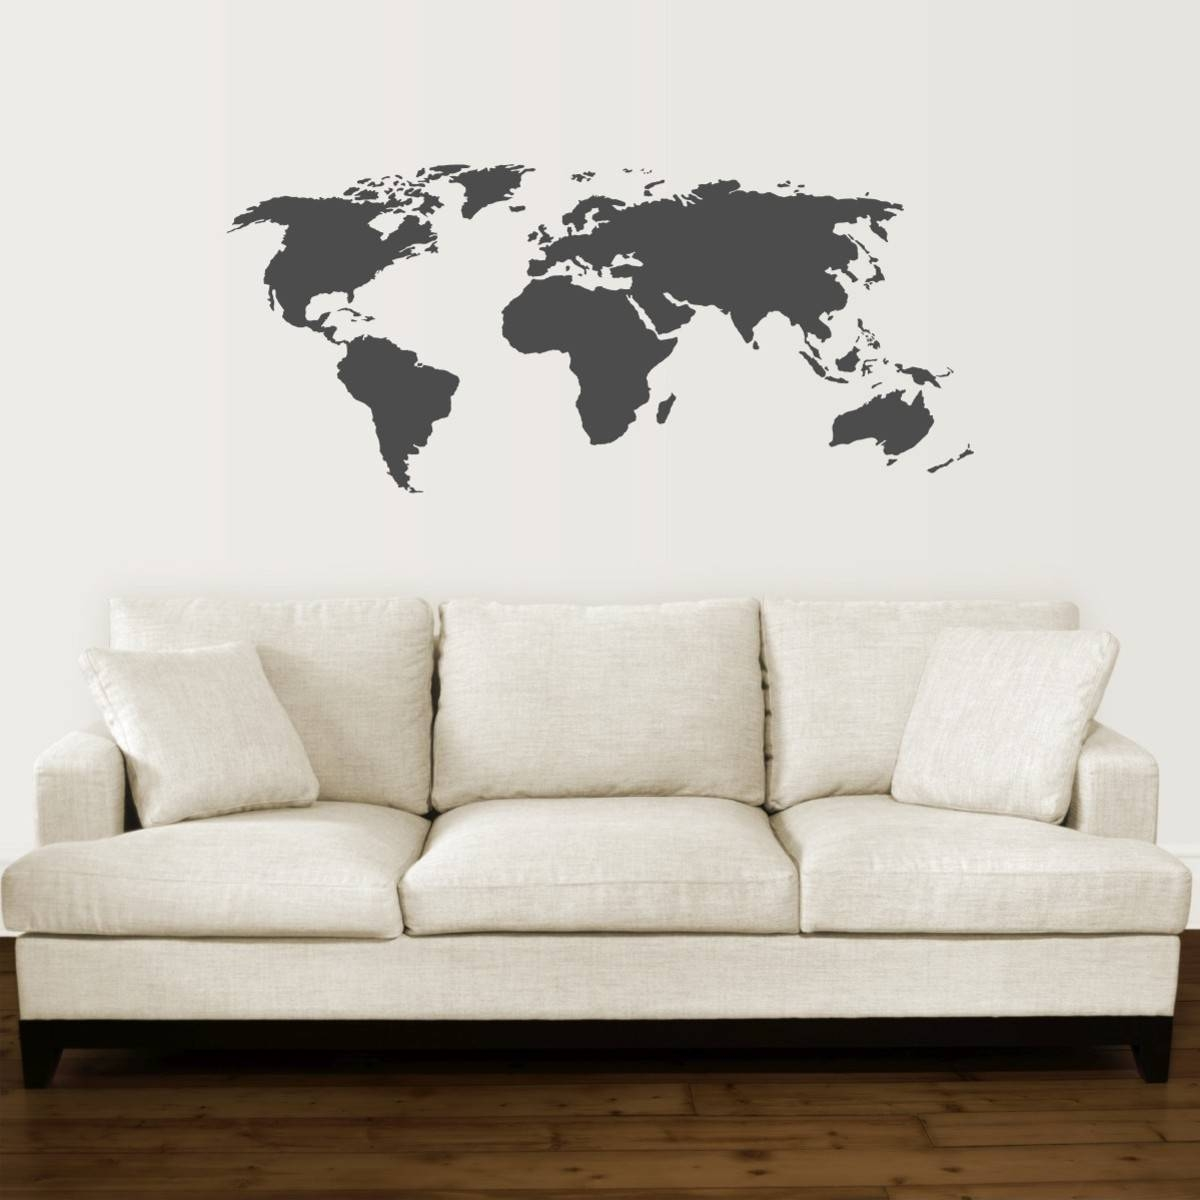 World Map Wall Quotes™ Wall Art Decal | Wallquotes Intended For Most Popular Map Wall Art (View 8 of 25)